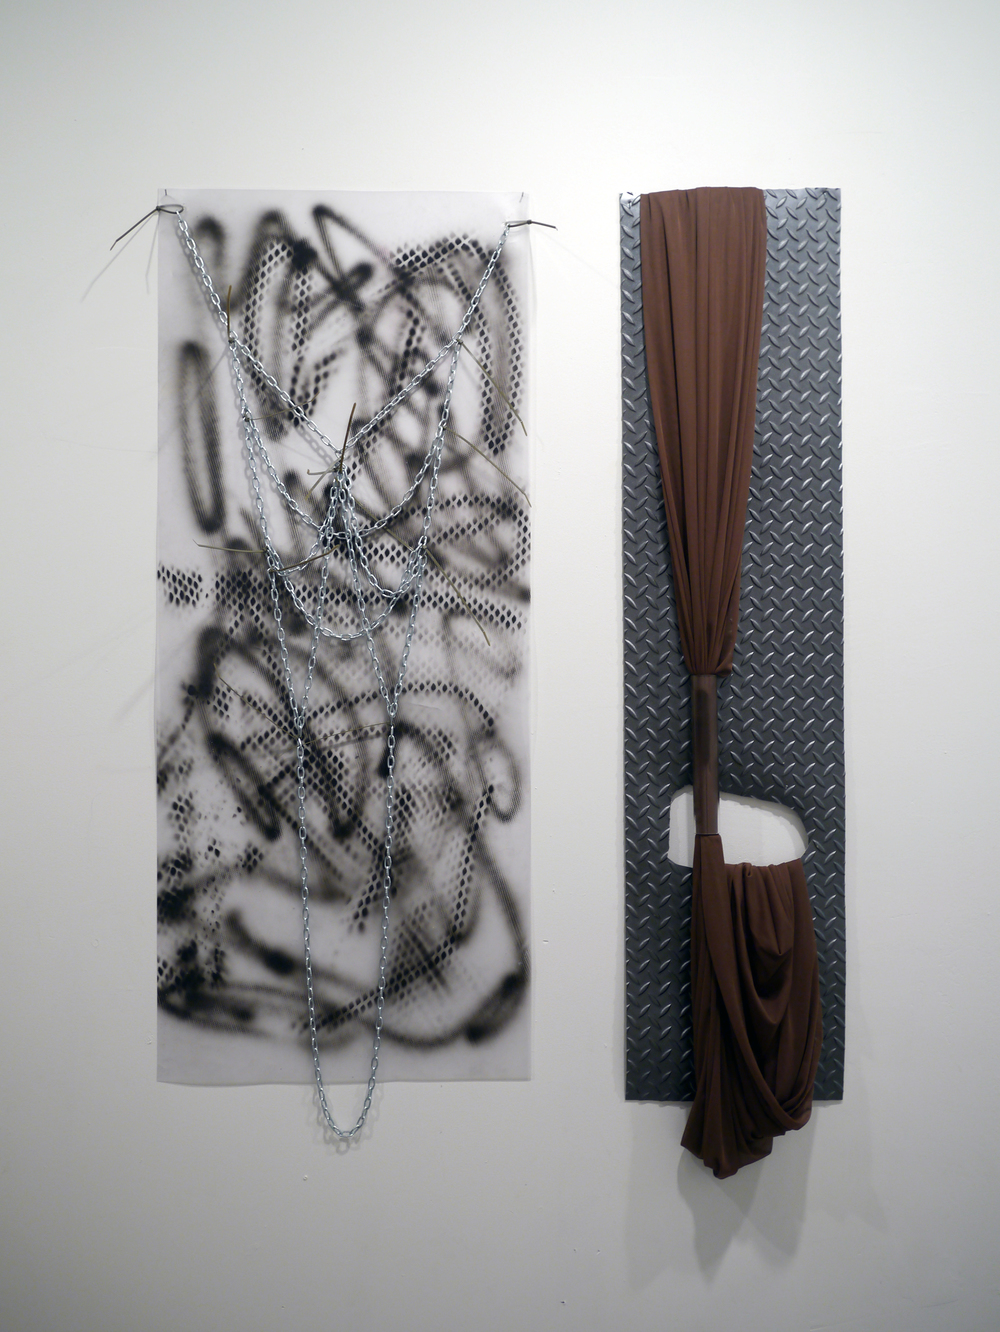 Raque Ford. left:  New York to Anaheim . plastic, painting, chains. 3.5' x 2'. right:  Not Tonight . Plastic, fabric. 4.5' x 1.5'.2013.